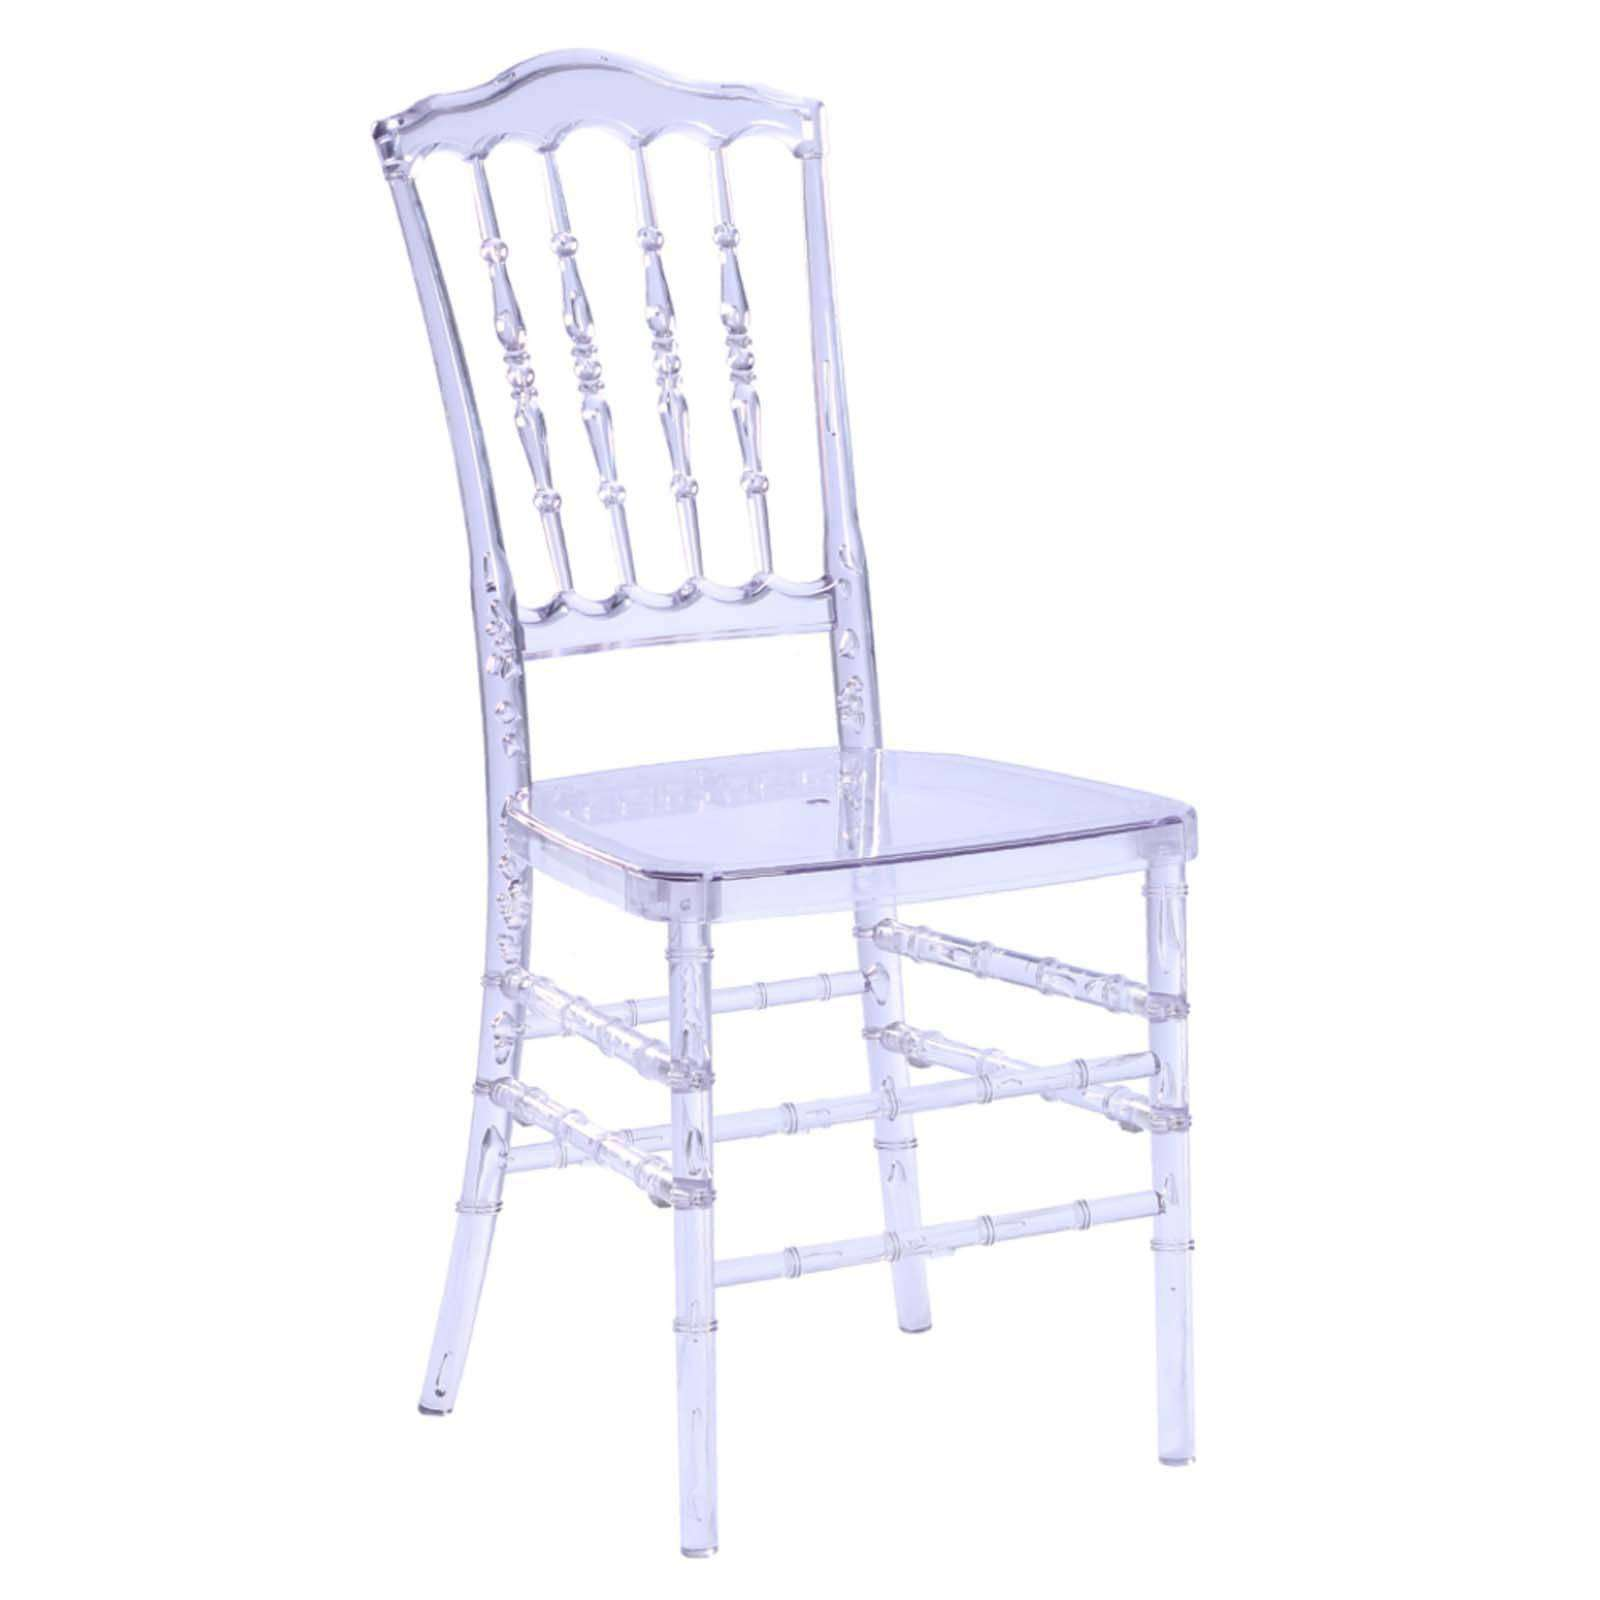 Arca Outdoor Dining Chair Clear